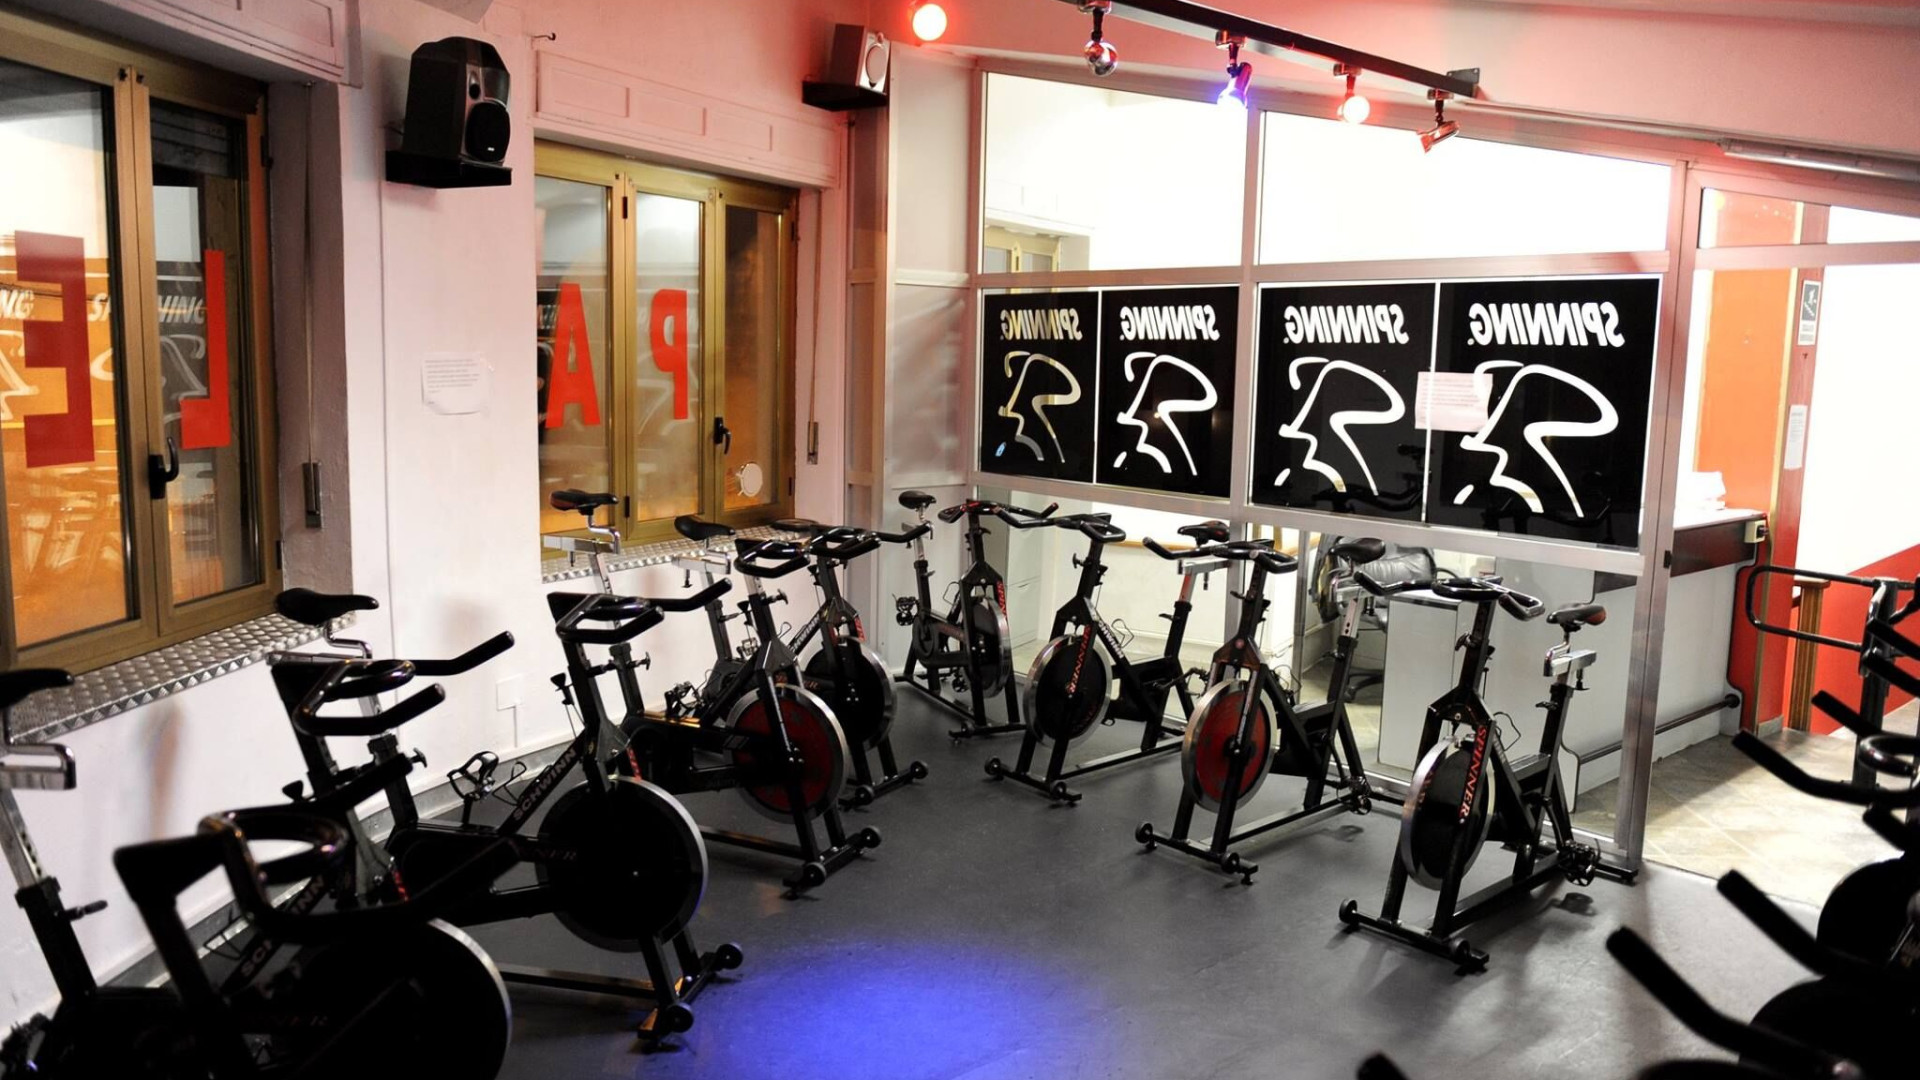 Fly Gym  Caselle Torinese